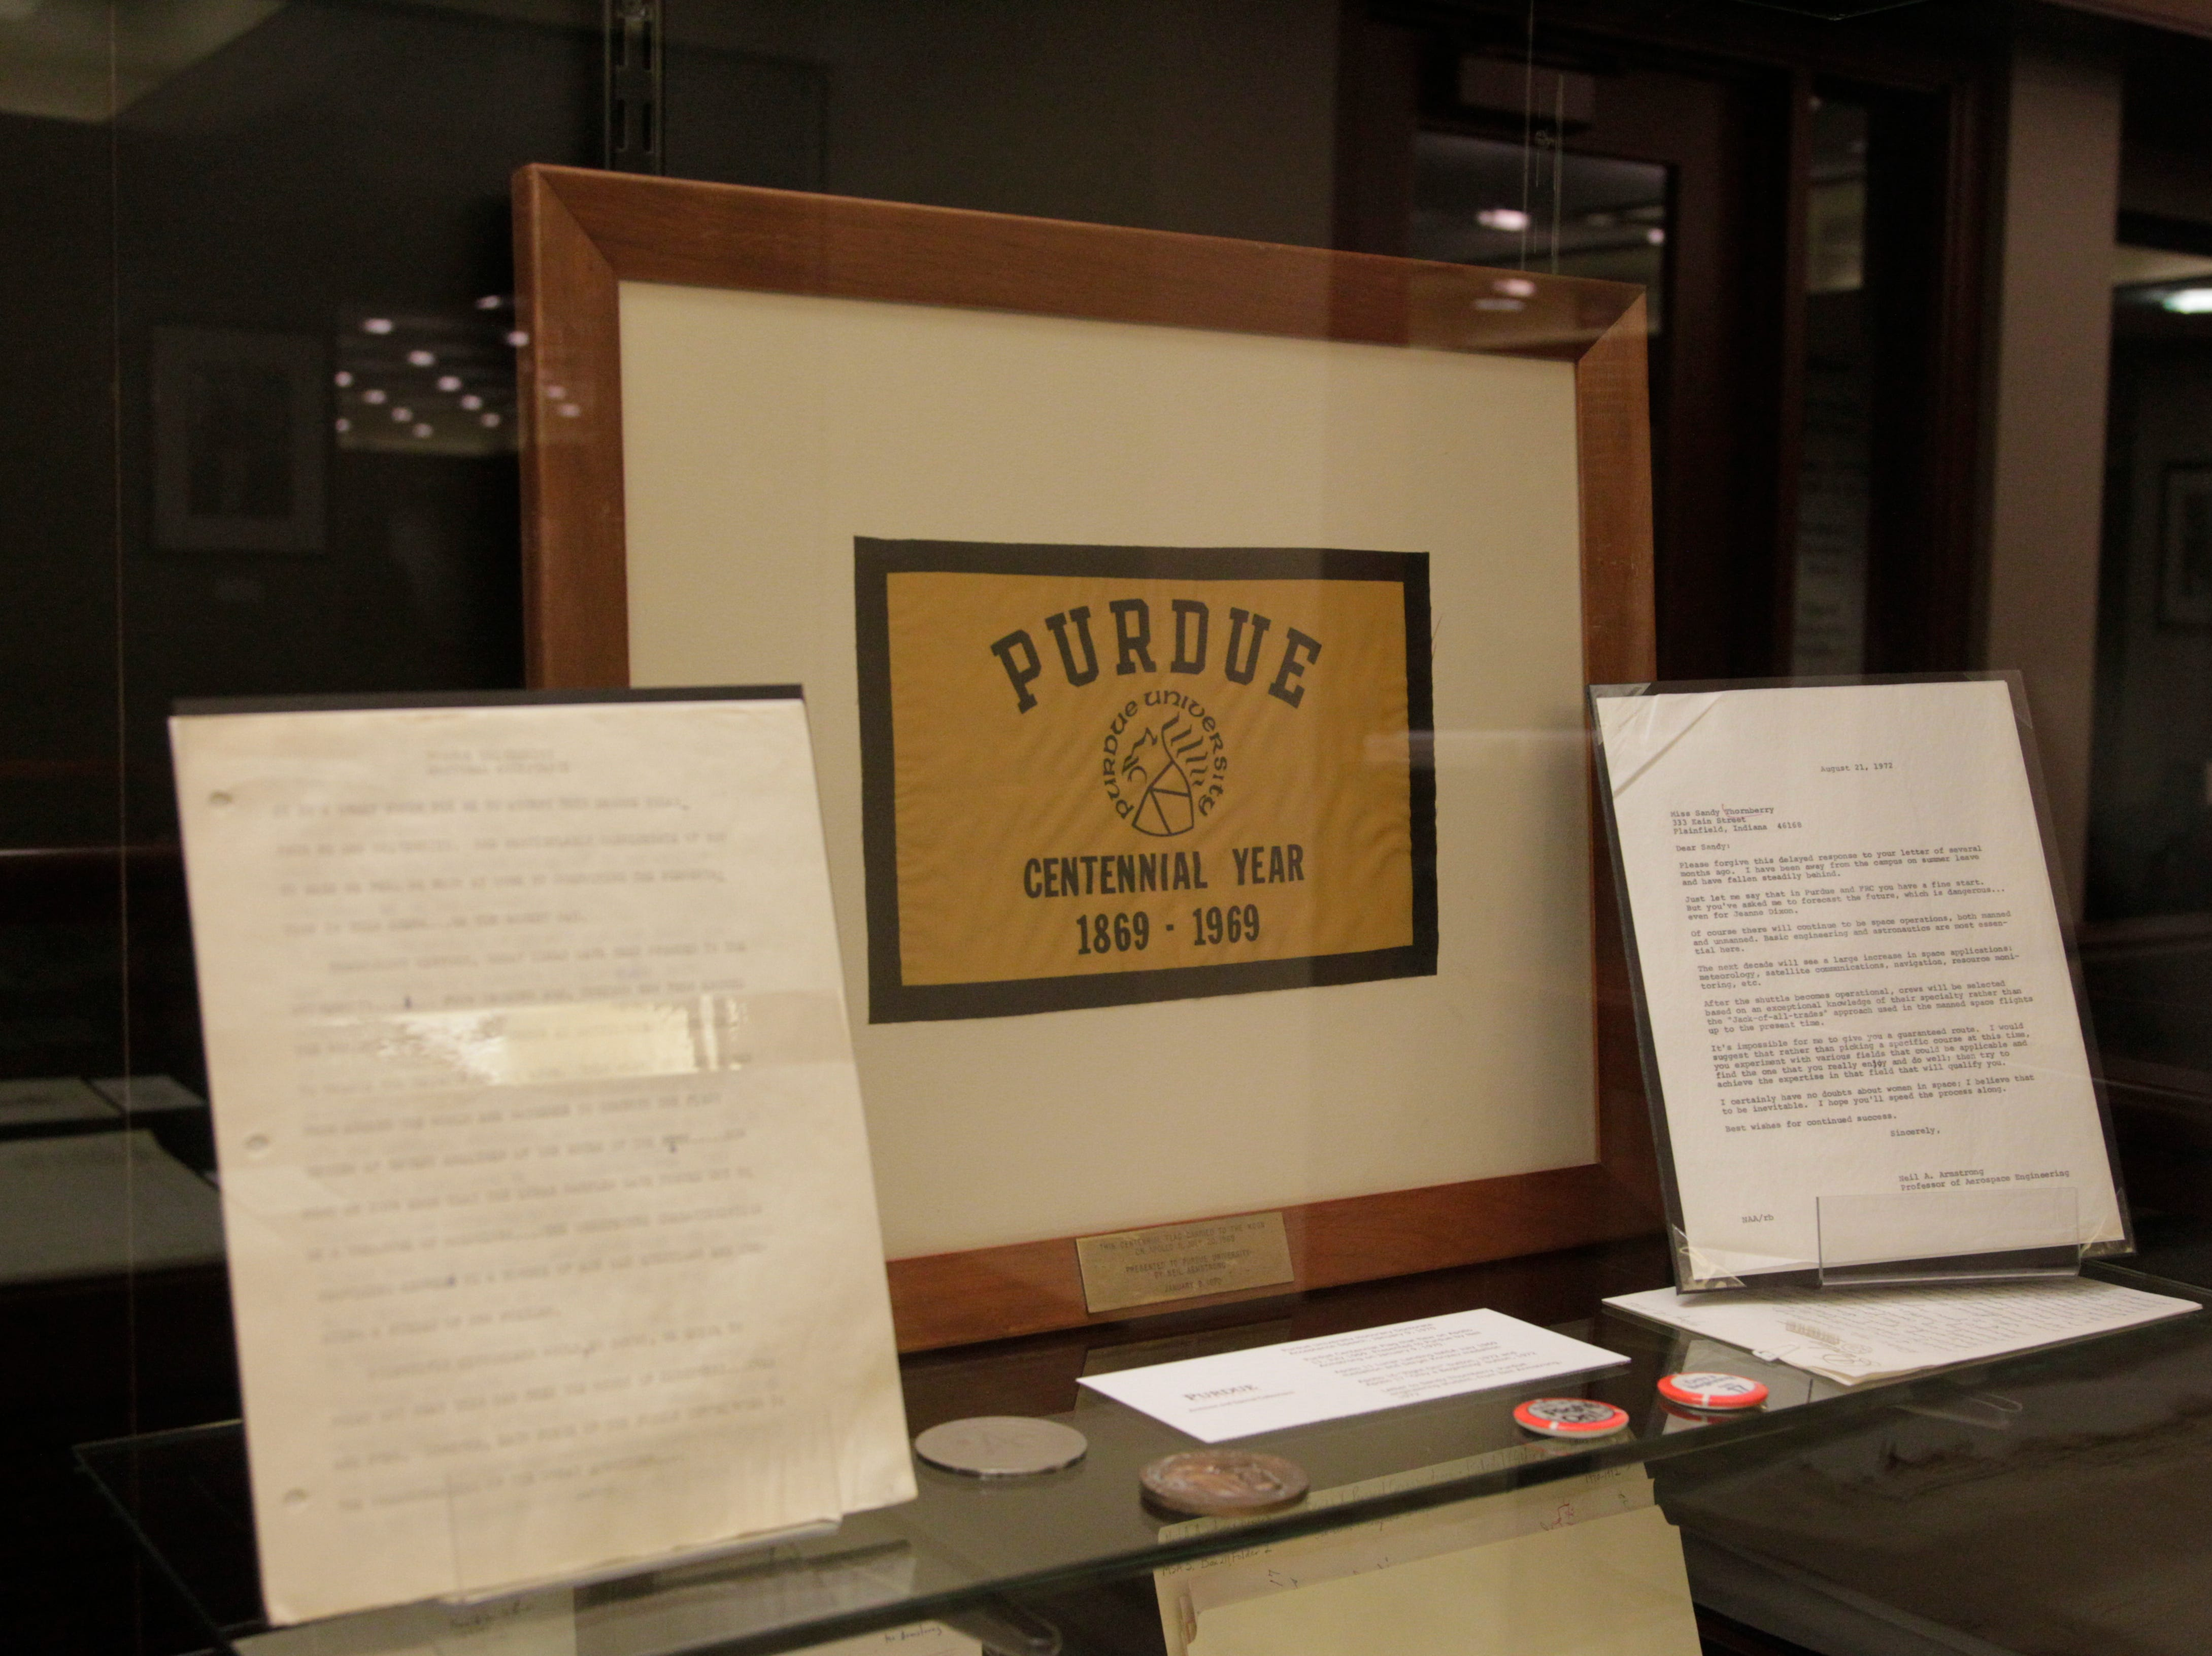 One of two Purdue Centennial flags Neil Armstrong took with him on the Apollo 11 mission to the moon in July 1969 sold for $42,000 as part of an auction.